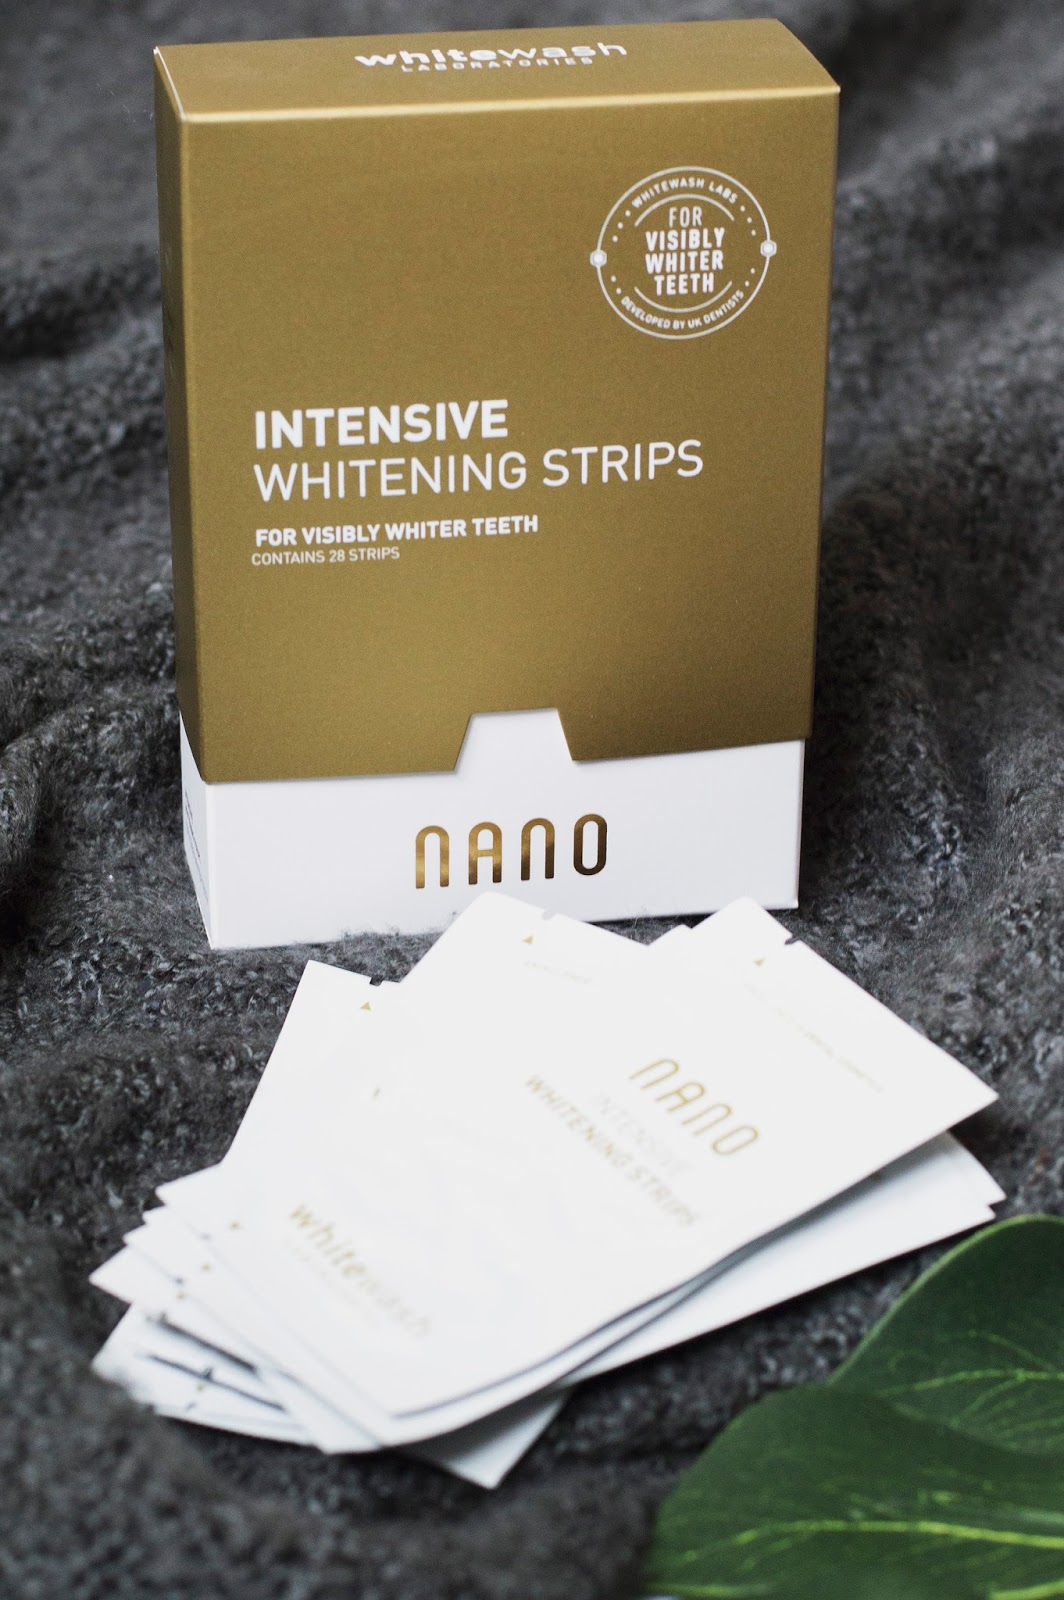 Teeth whitening, Nano intensive whitening strips, Whitewash Labs, whitening strips